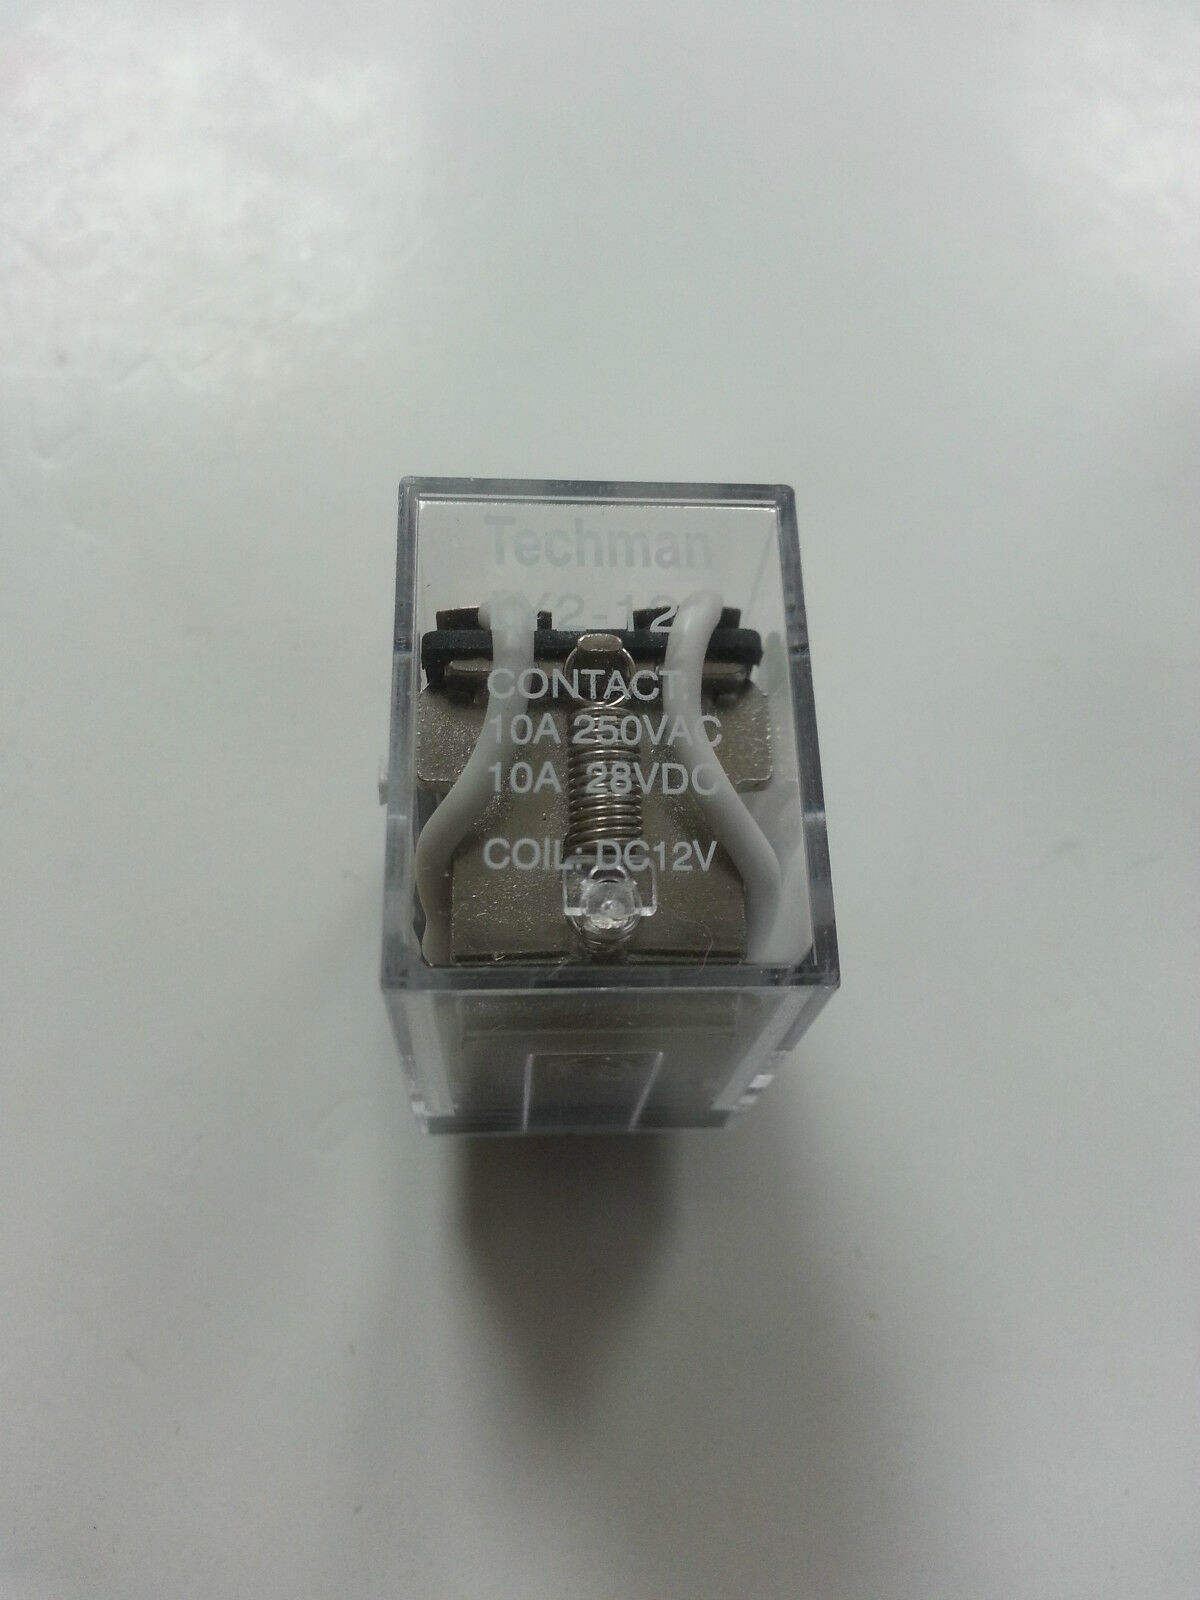 1 Piece Power Relay Coil 12vdc 12v Dpdt 10a 8 Pins Us Free Omron Mks2p 30vcd Of 2free Shipping